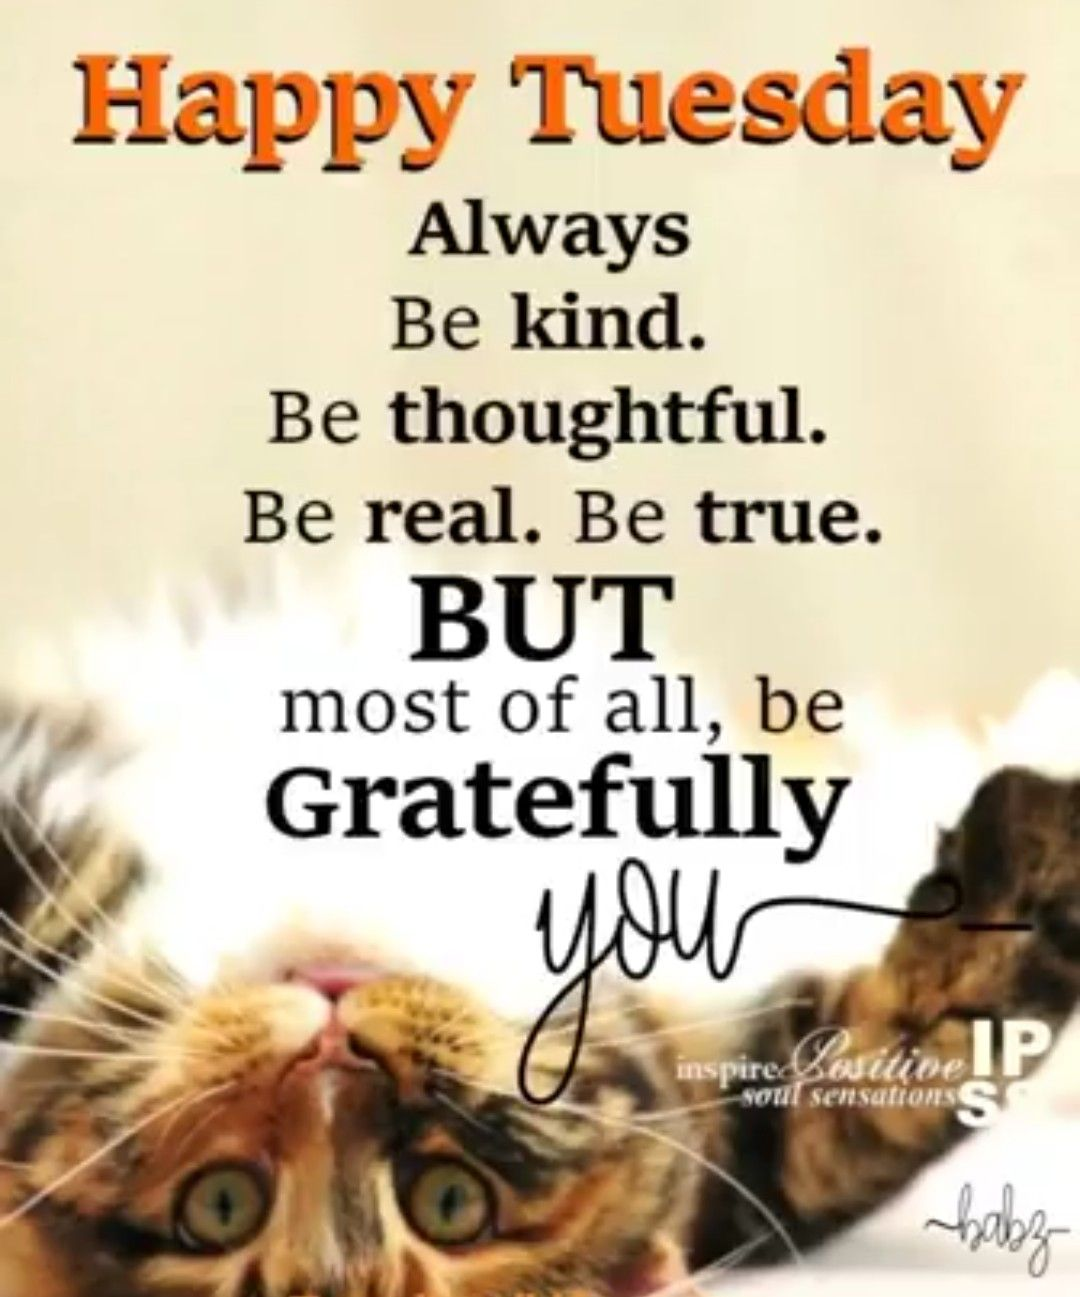 Happy Tuesday Good Morning Tuesday Quotes Good Morning Tuesday